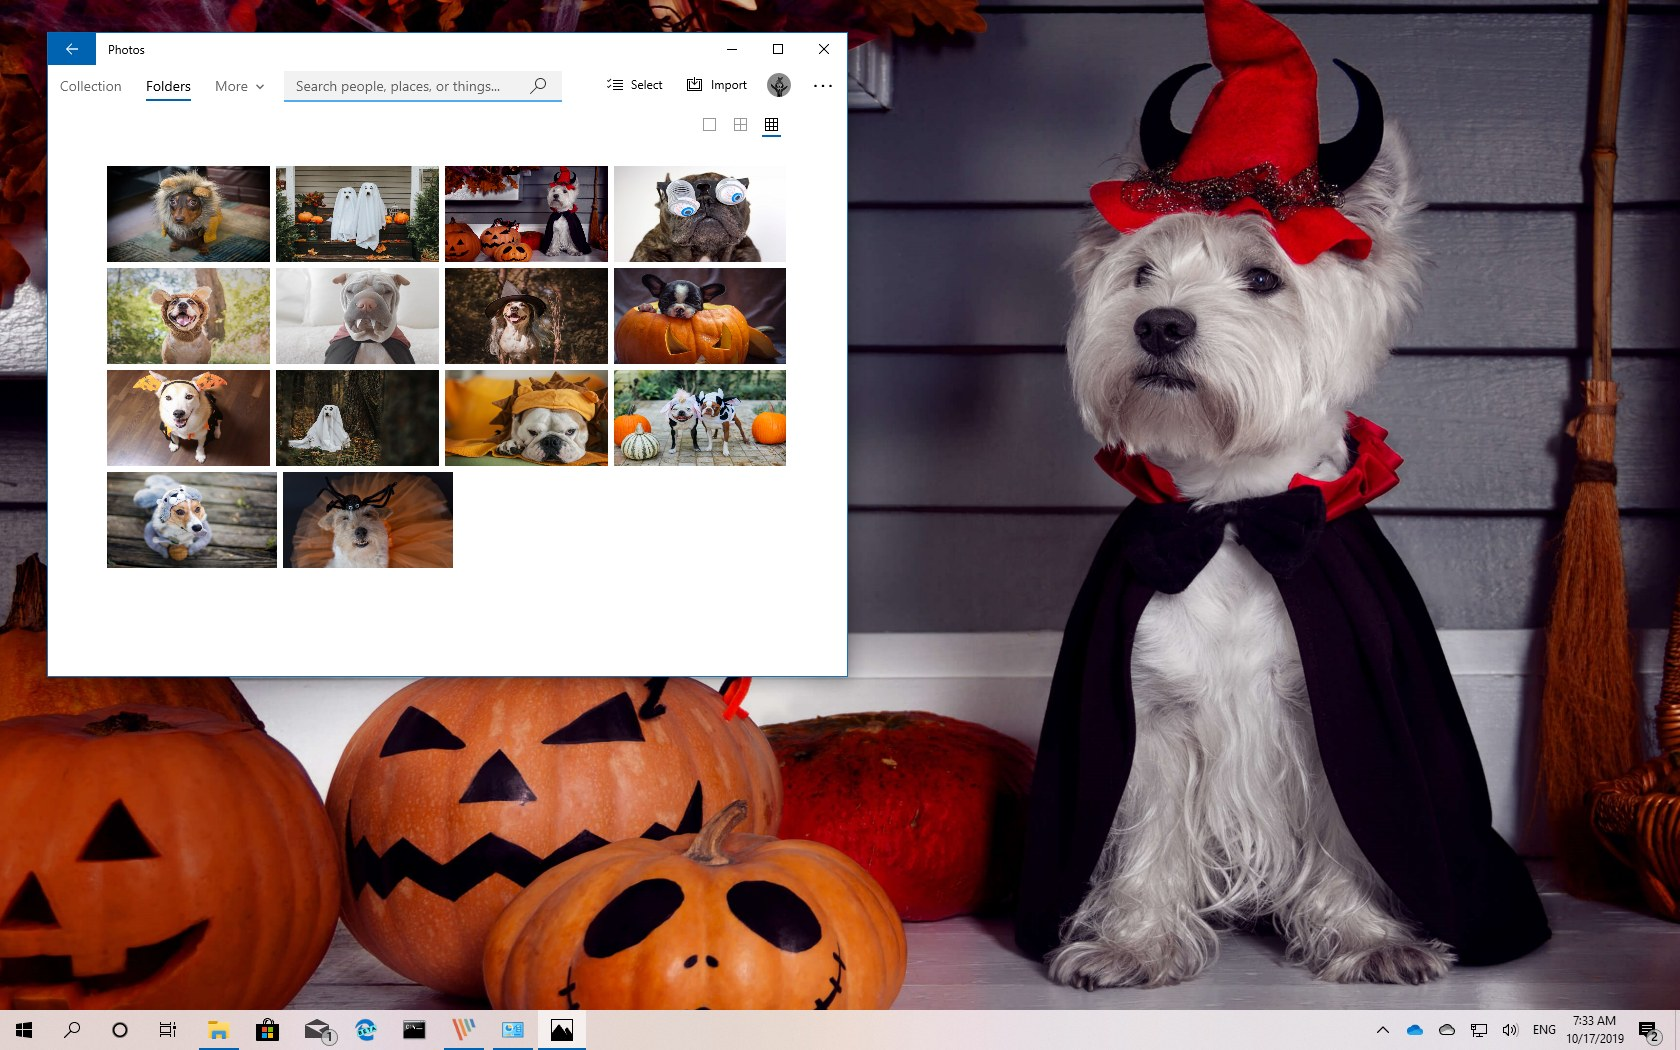 Dogs In Disguise theme